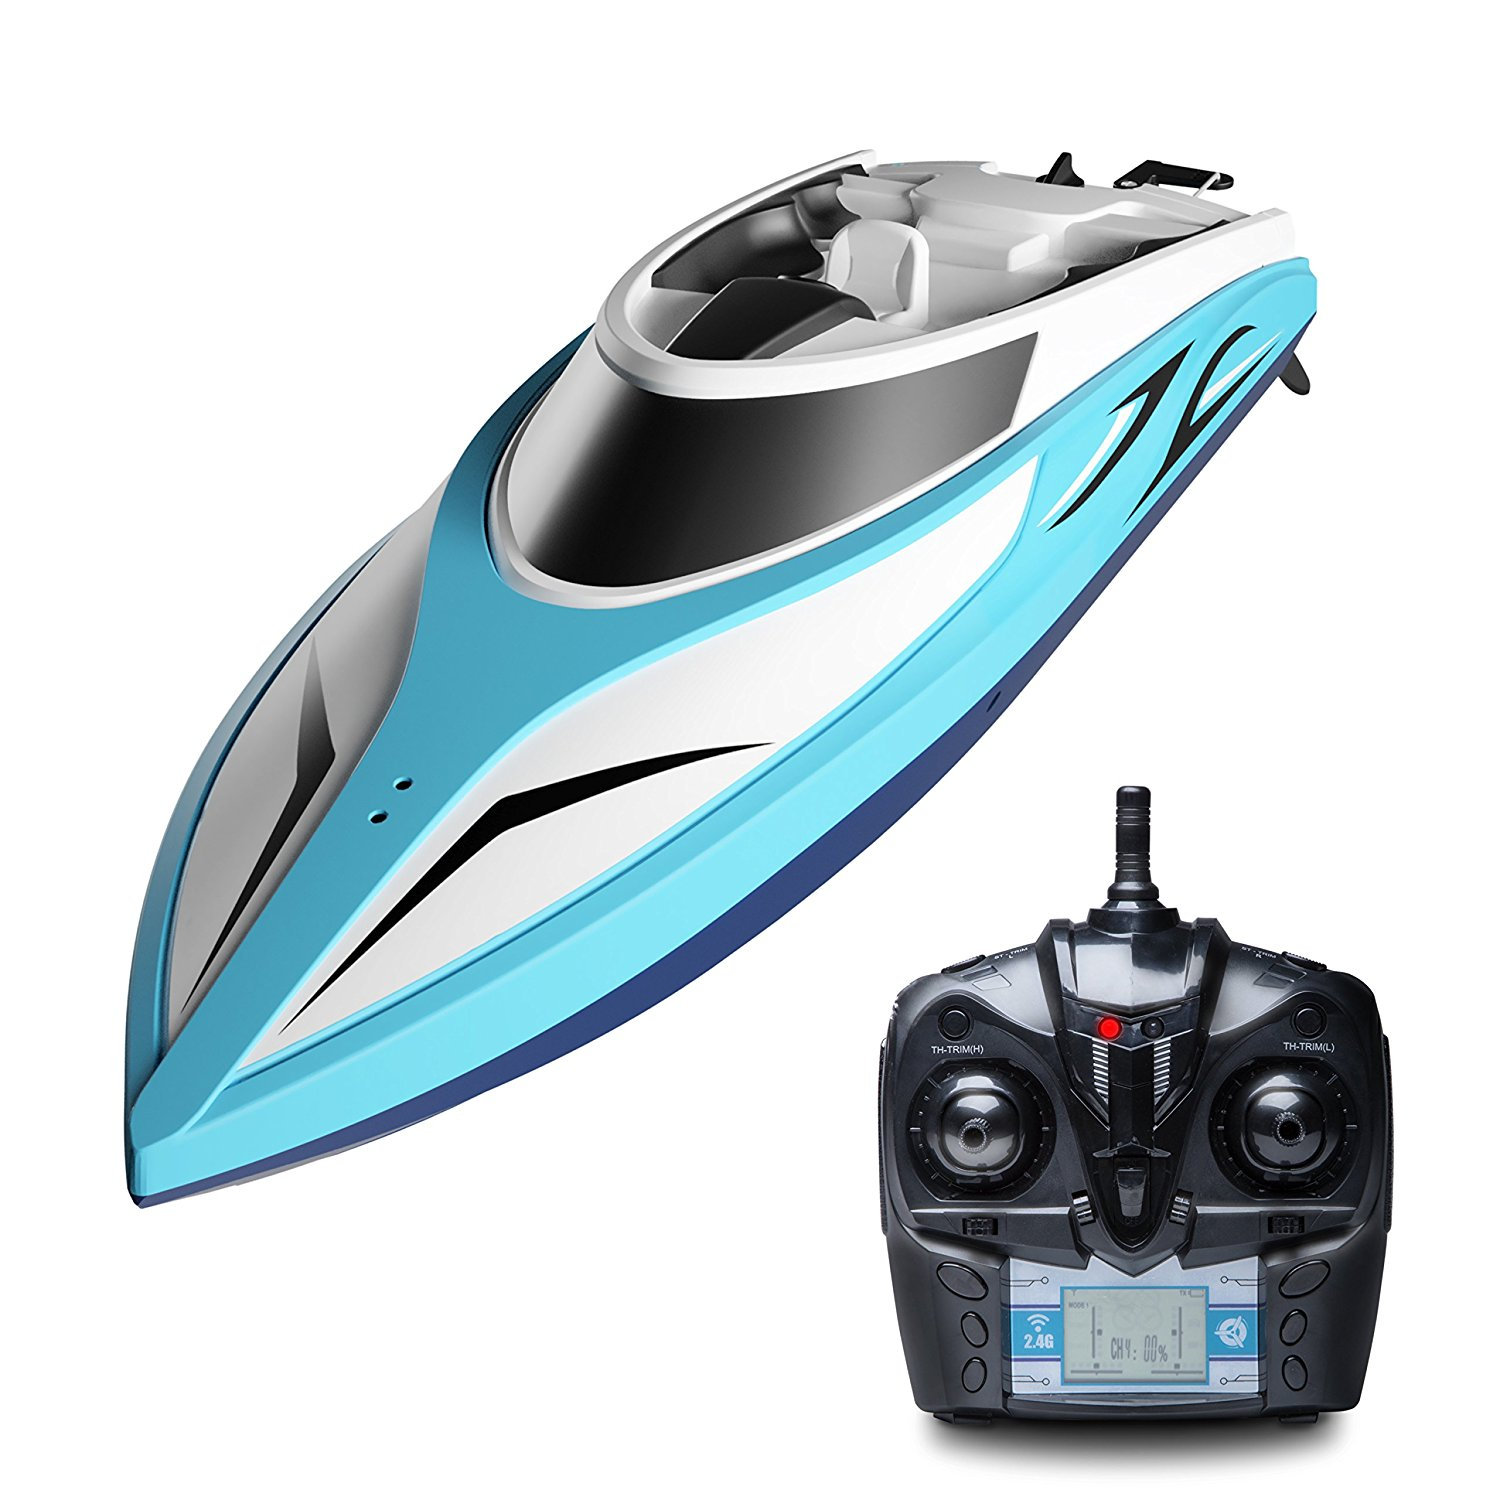 �H102 Velocity� High Speed Remote Control Boat with Extra Battery + Toy Boat Capsize Recovery for Fast RC Boat Racing by USA Toyz